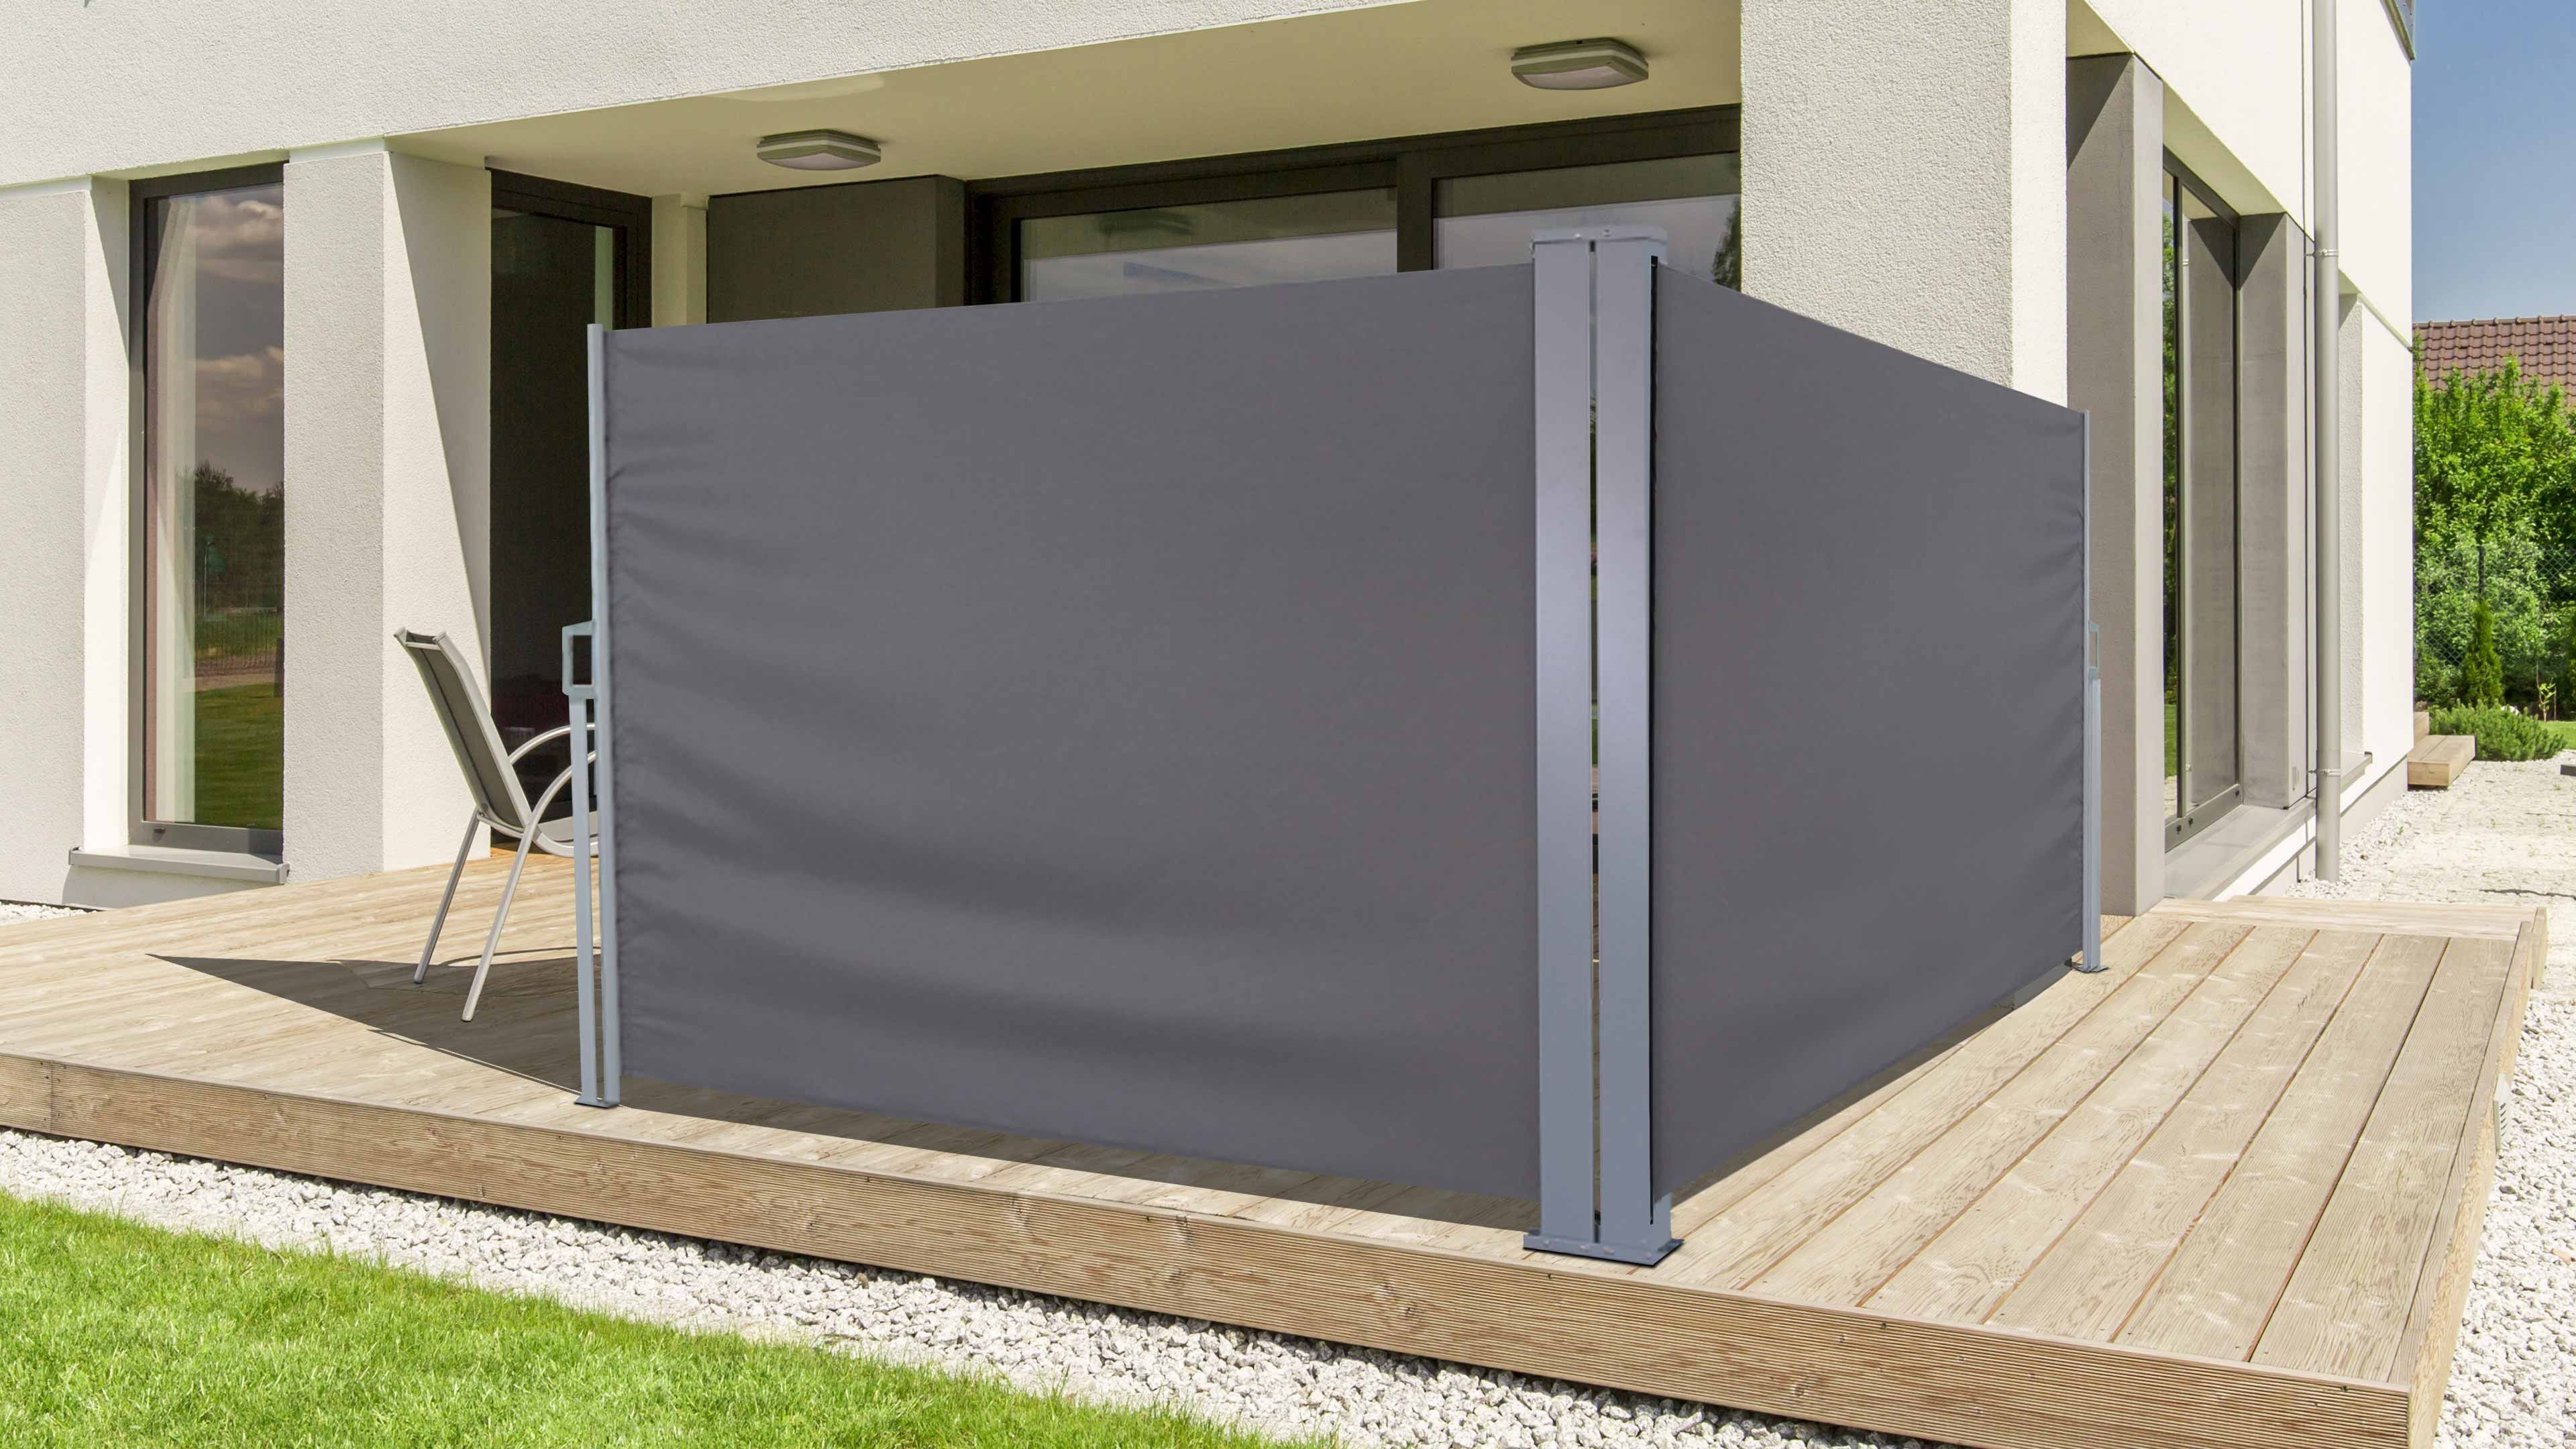 New Brise Vue Enroulable 4m House Home Retractable Awning